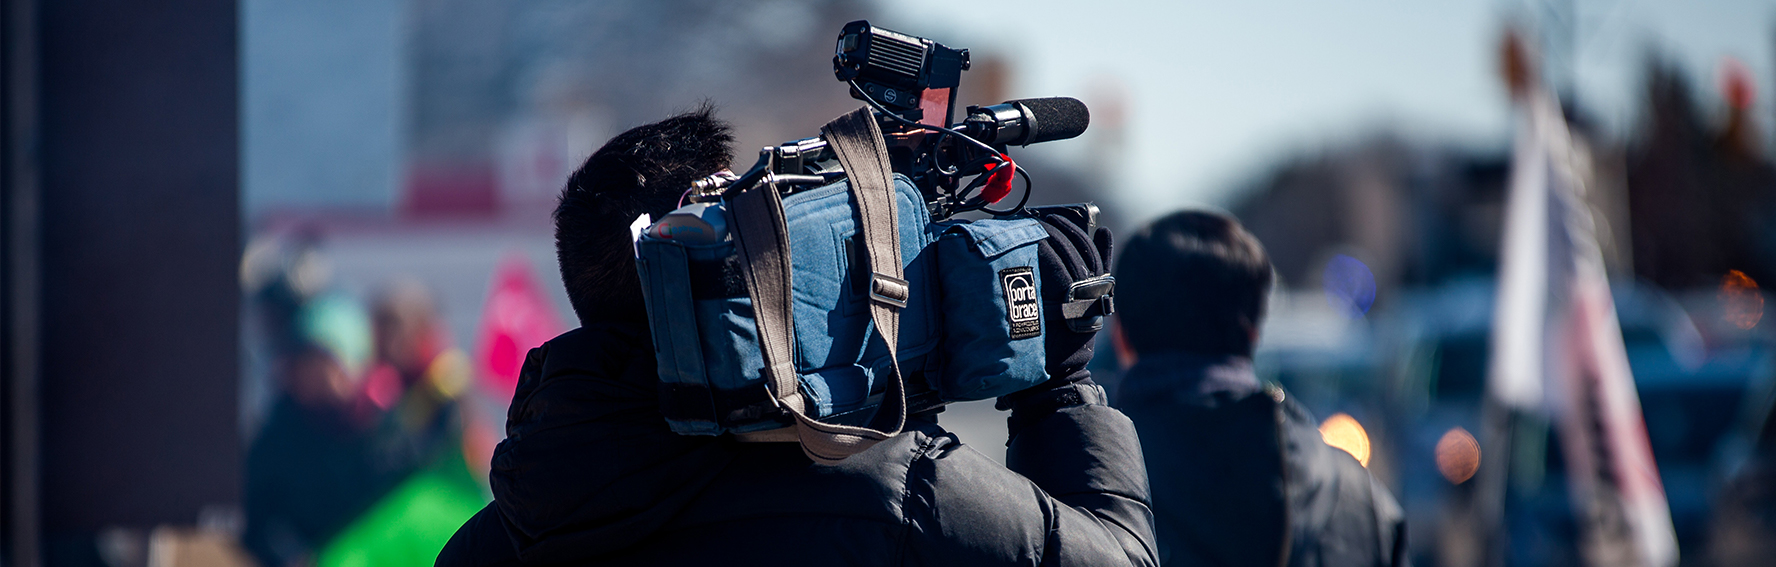 5 Steps for Video Production